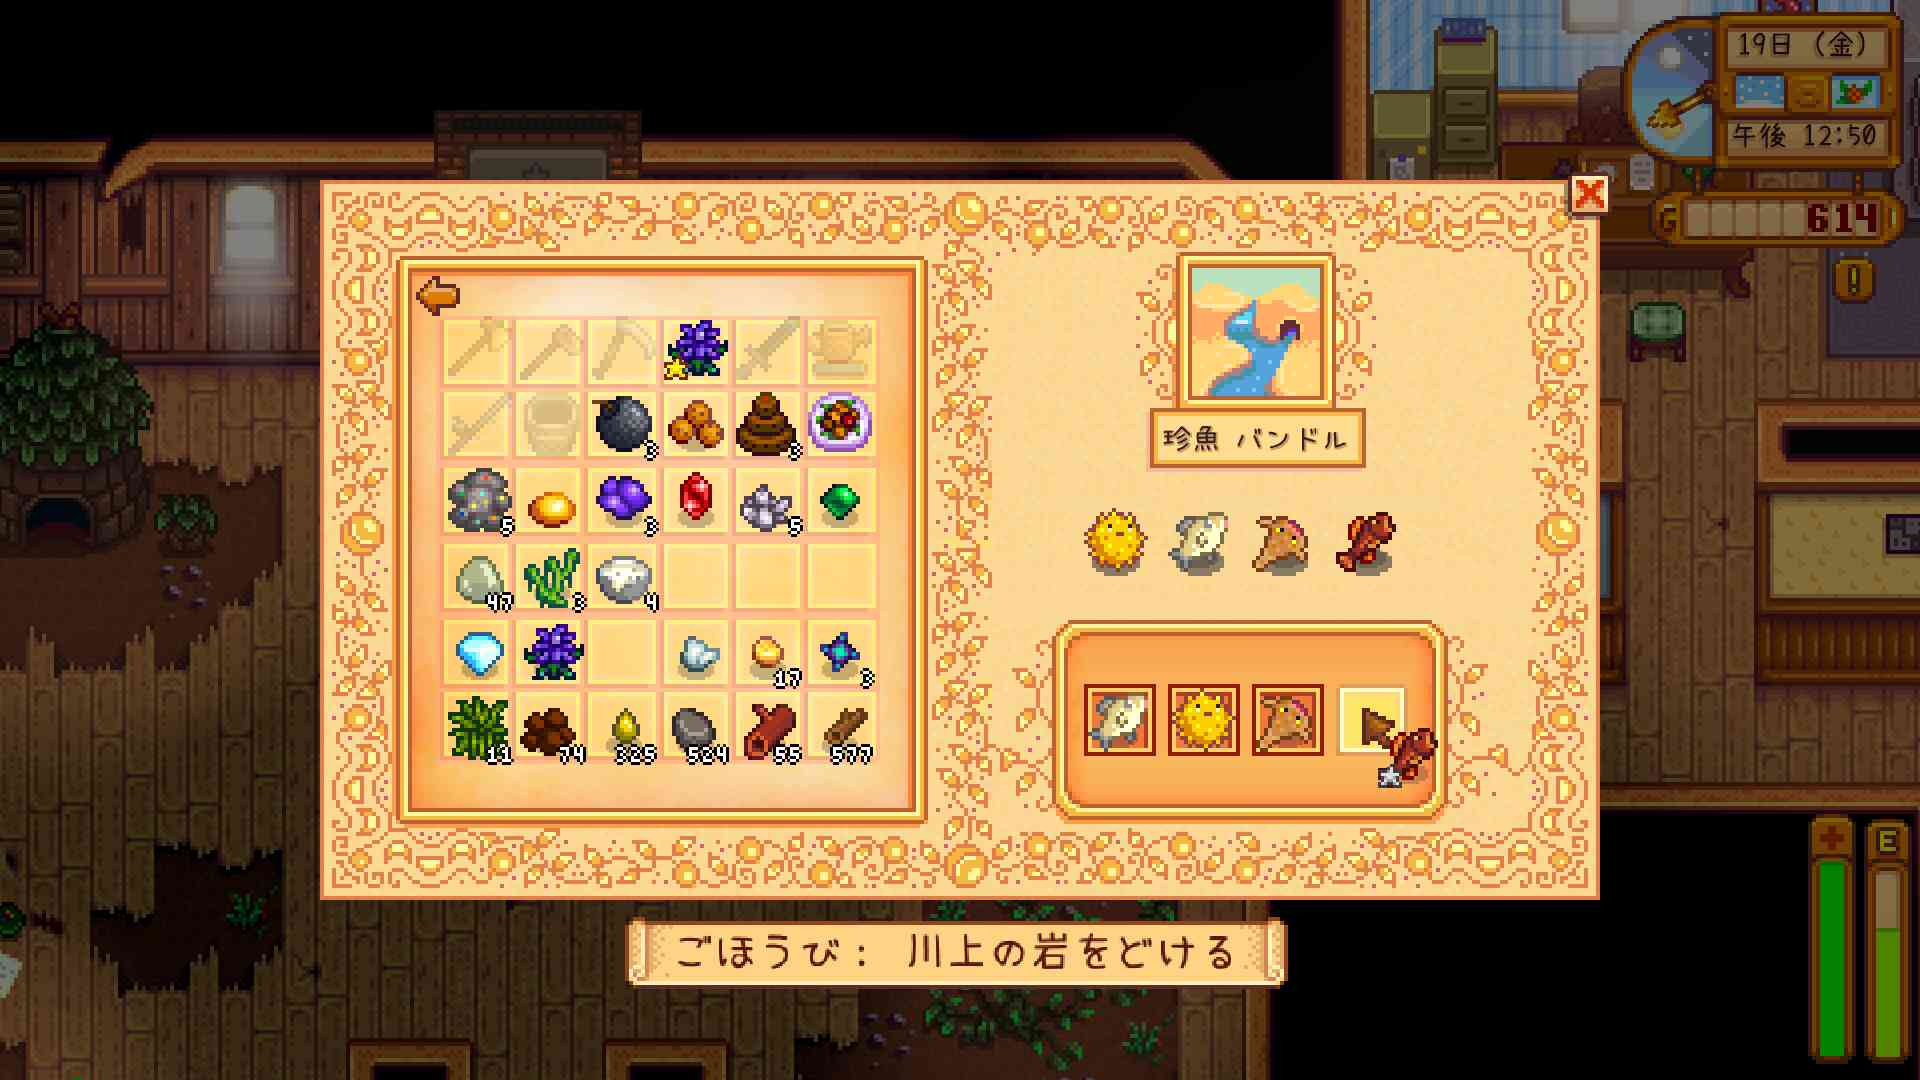 Stardewmoddingapi 2017 05 24 22 53 49 428